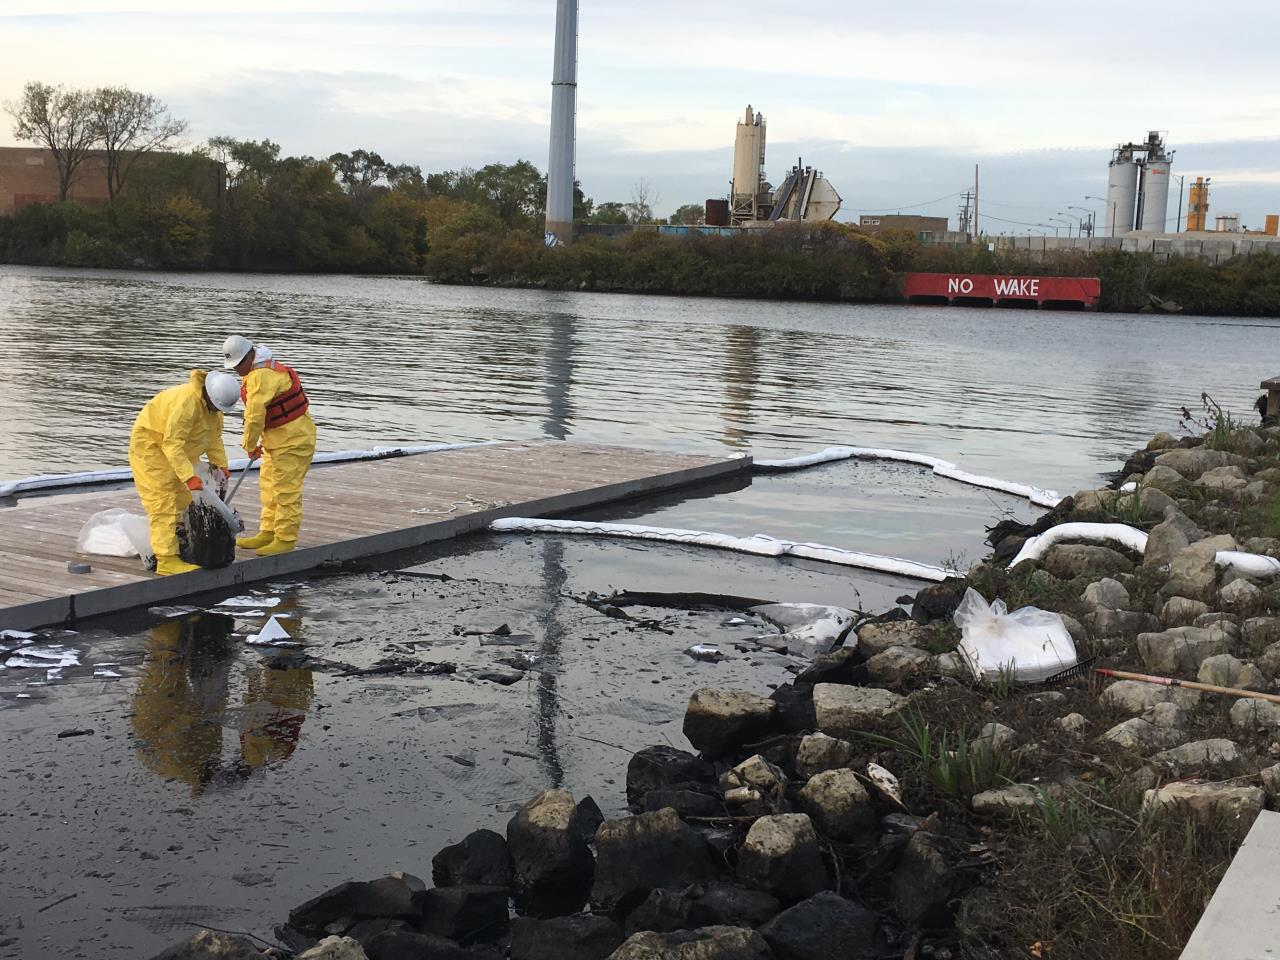 Workers from the Environmental Protection Agency respond to an oil spill Oct. 26 at a fork of the Chicago River known as Bubbly Creek. (EPA)